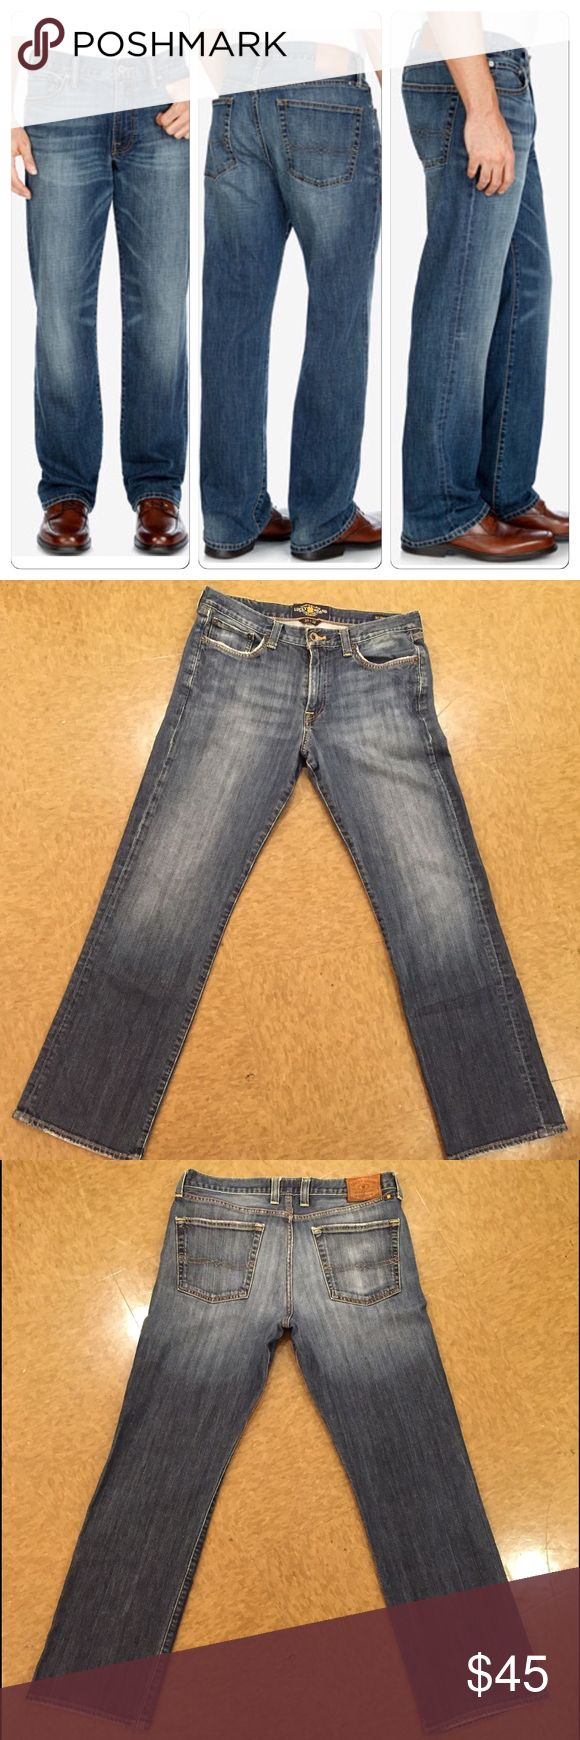 LUCKY Brand Men's 361 Vintage Straight-Leg jean These Mens Lucky Brand  size 33x32 are gently used and have minimal signs of wear. 98% Cotton/2% Elastane Button closure Machine Wash Faded straight-leg jean with whiskering at hips, honeycombs, and five-pocket styling Zip fly with button Lucky Brand Jeans Straight